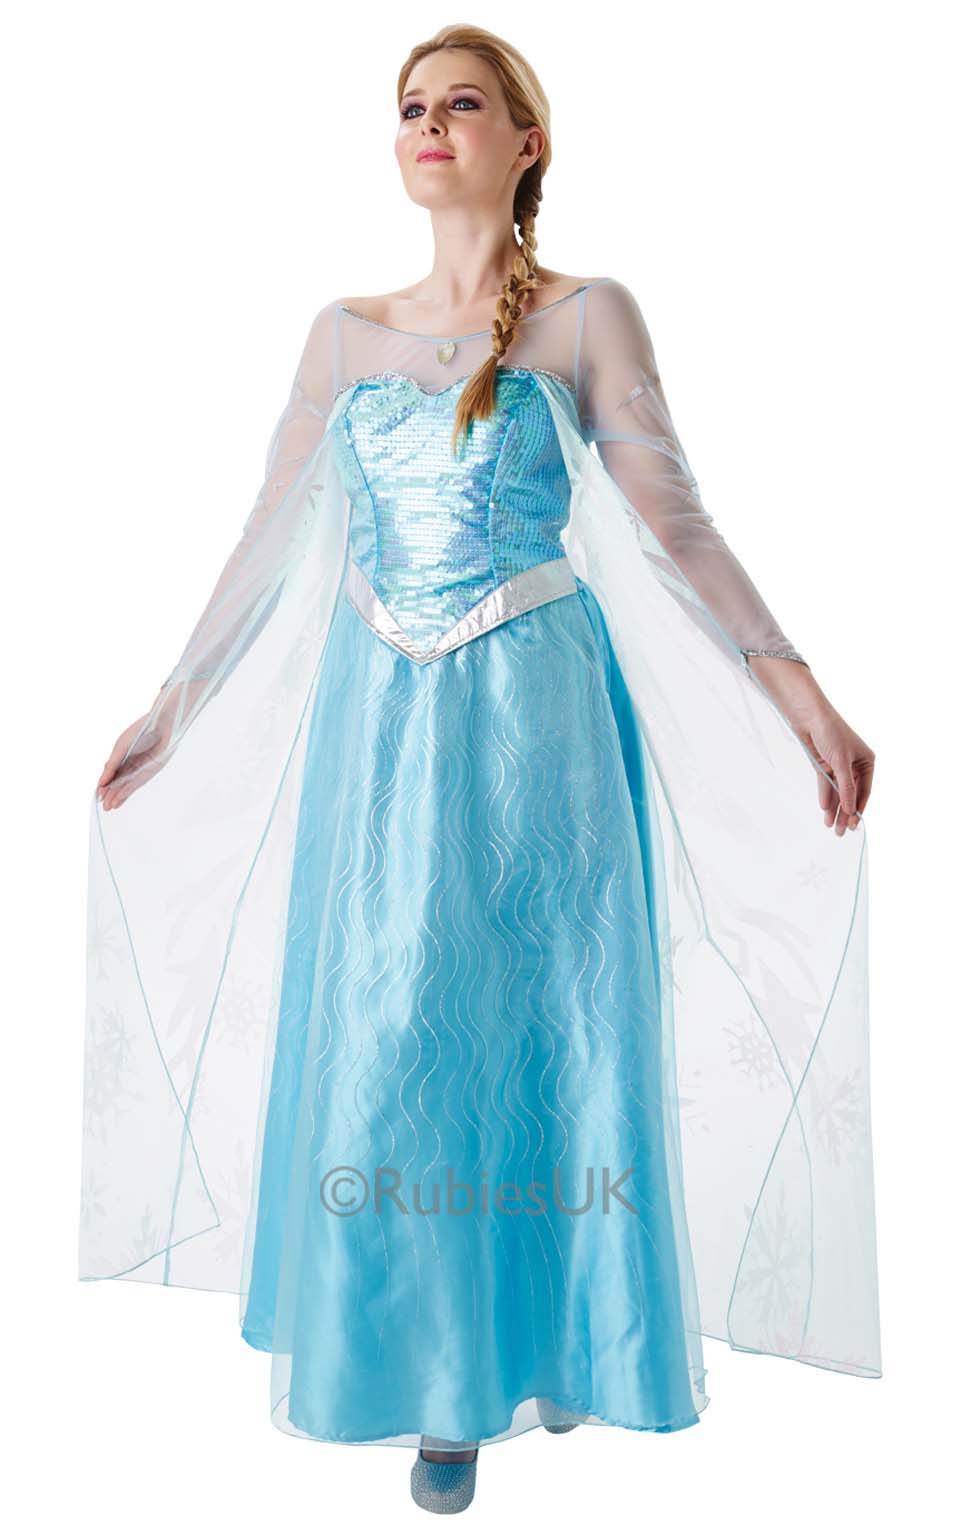 ladies frozen costumes ladies frozen elsa costumes  sc 1 st  Little Star Parties & Frozen Elsa Adult Costume Fancy Dress Costumes u0026 Party Supplies ...